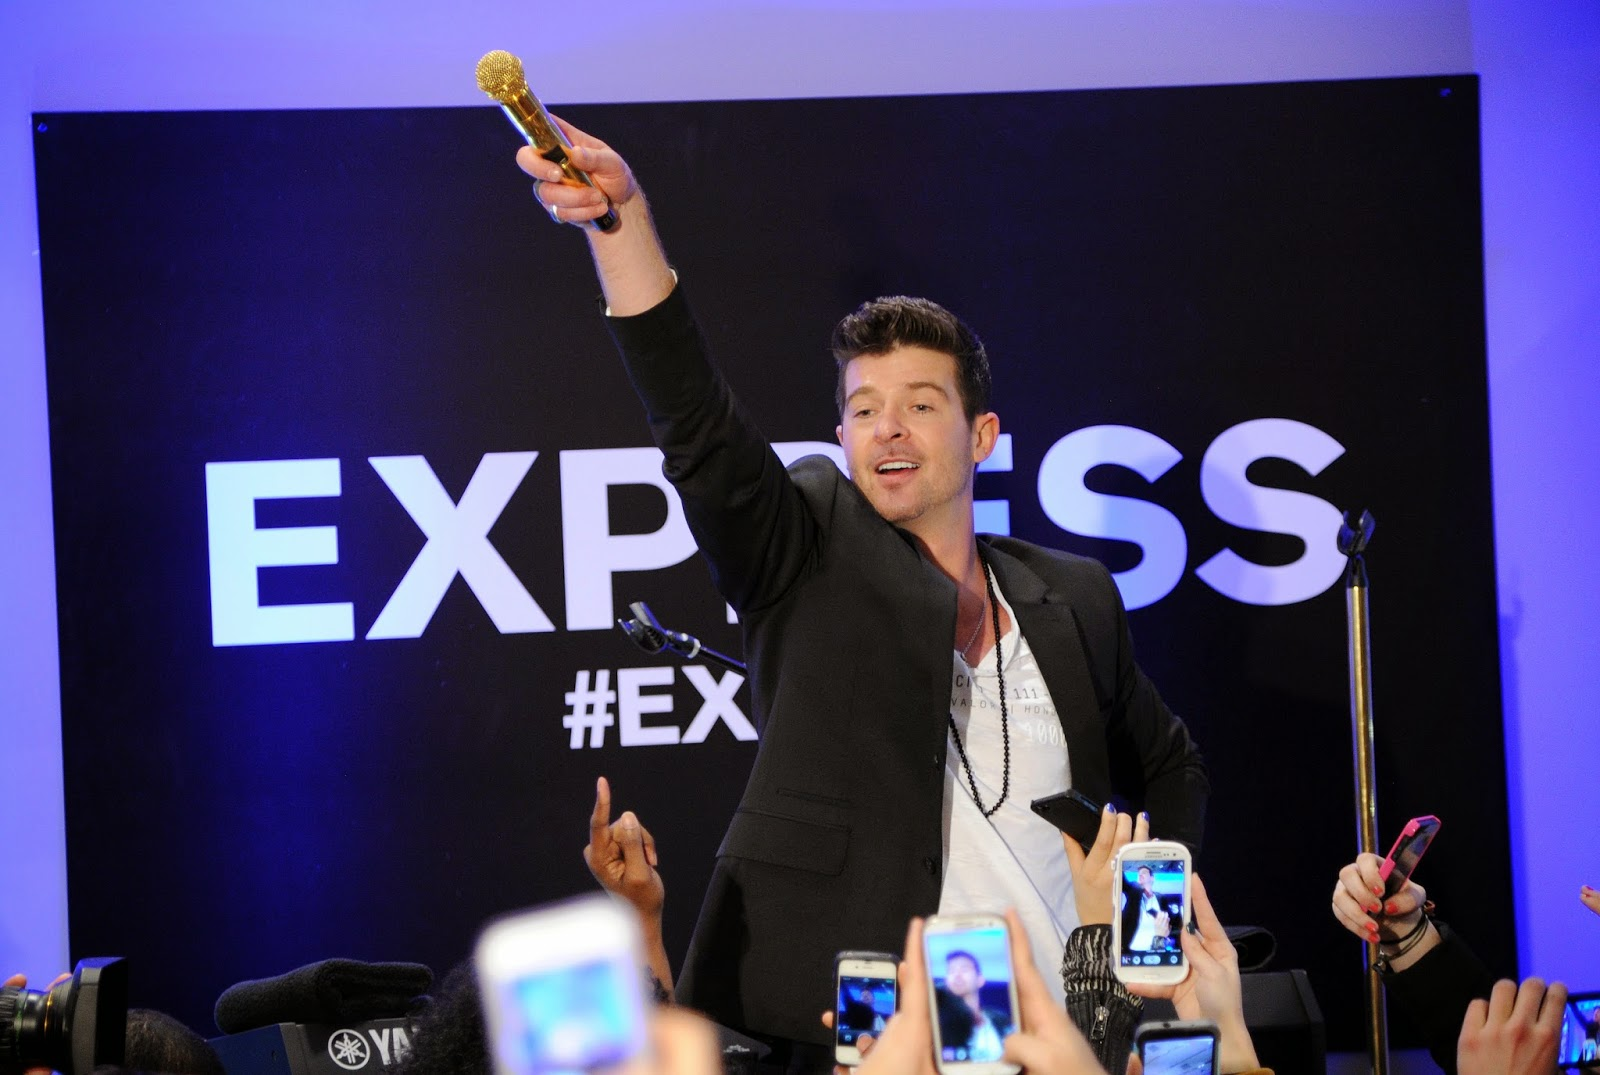 Robin Thicke Opened the Express Times Squares with a Live Performance.